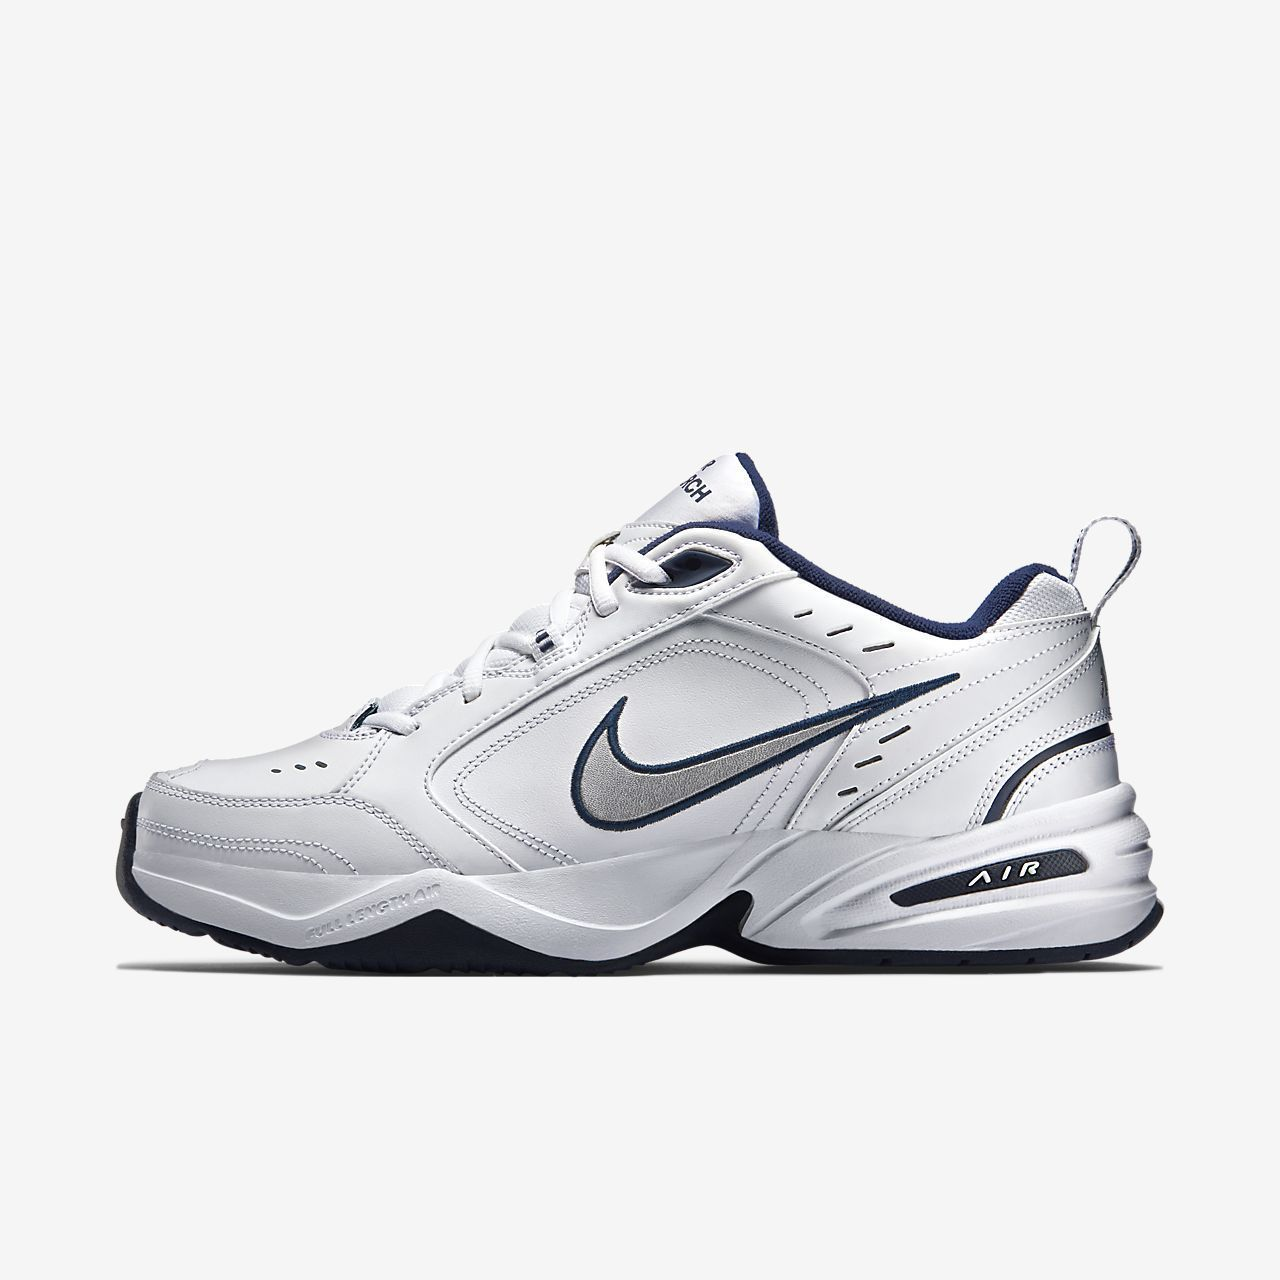 TOP 10 DAD SHOES (CHUNKY SNEAKERS